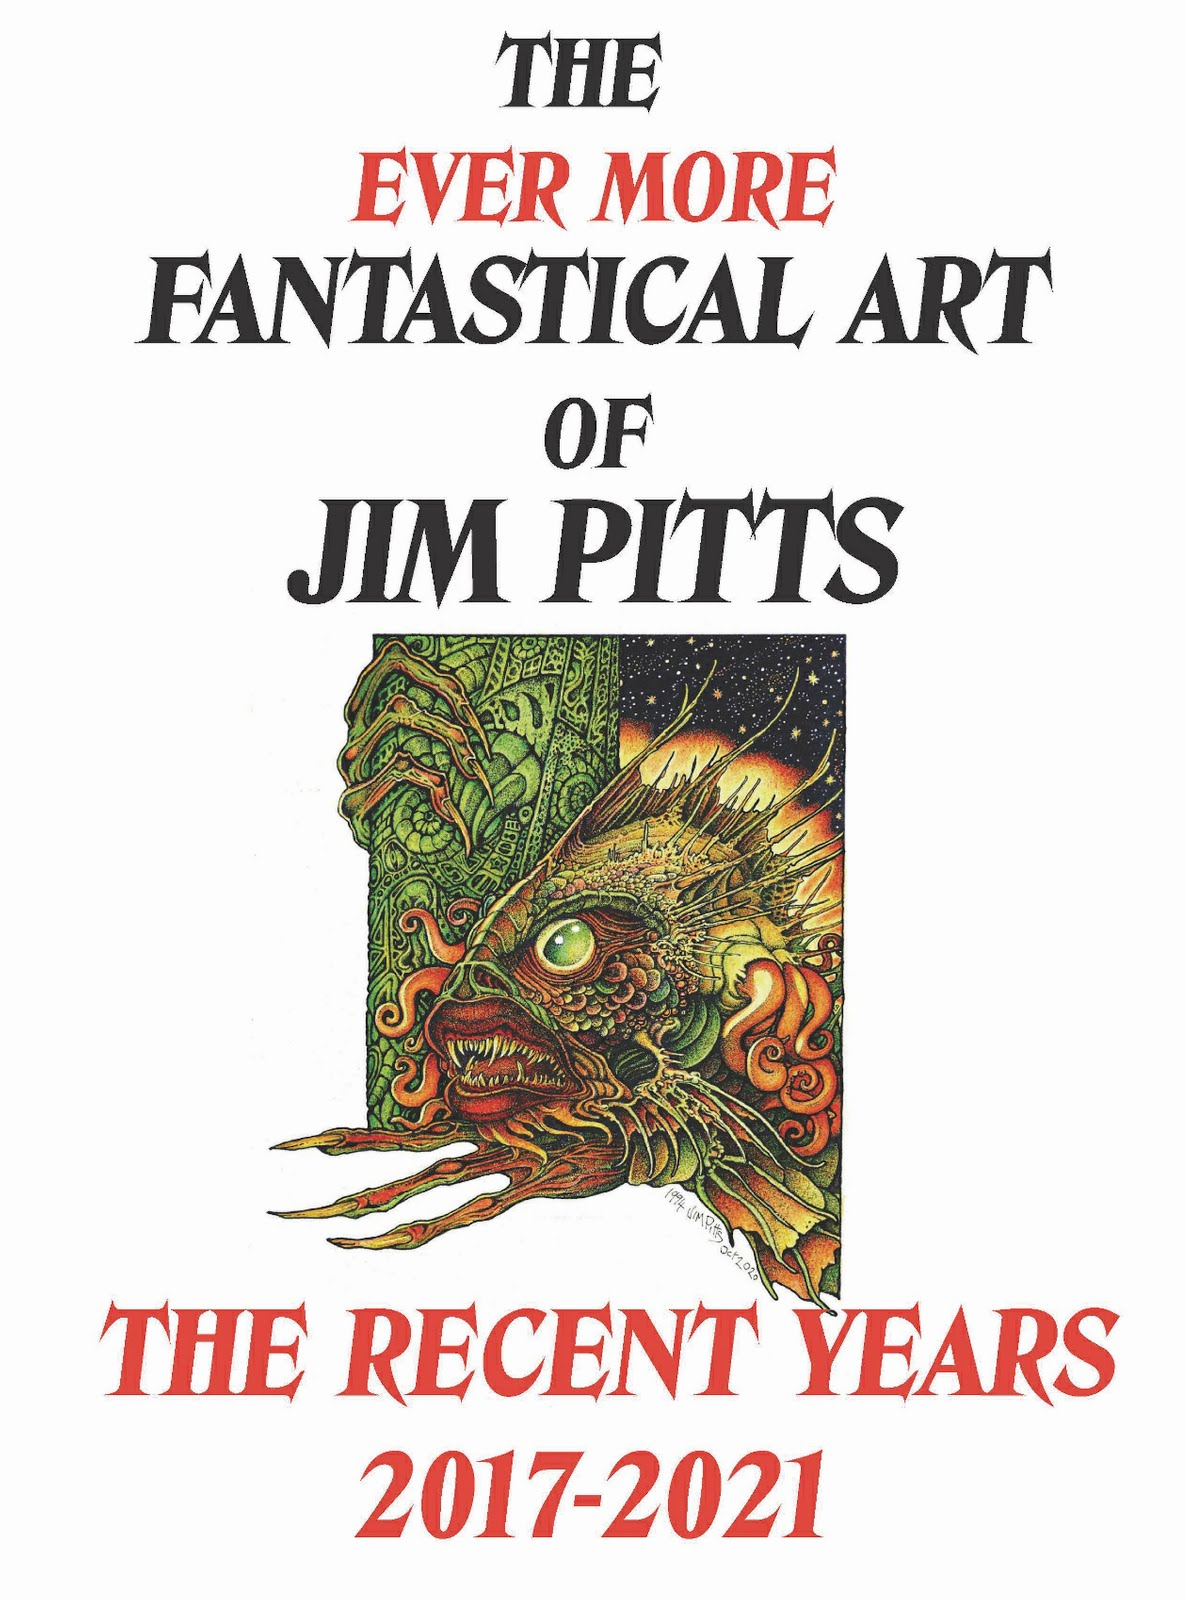 The Ever More Fantastical Art of Jim Pitts